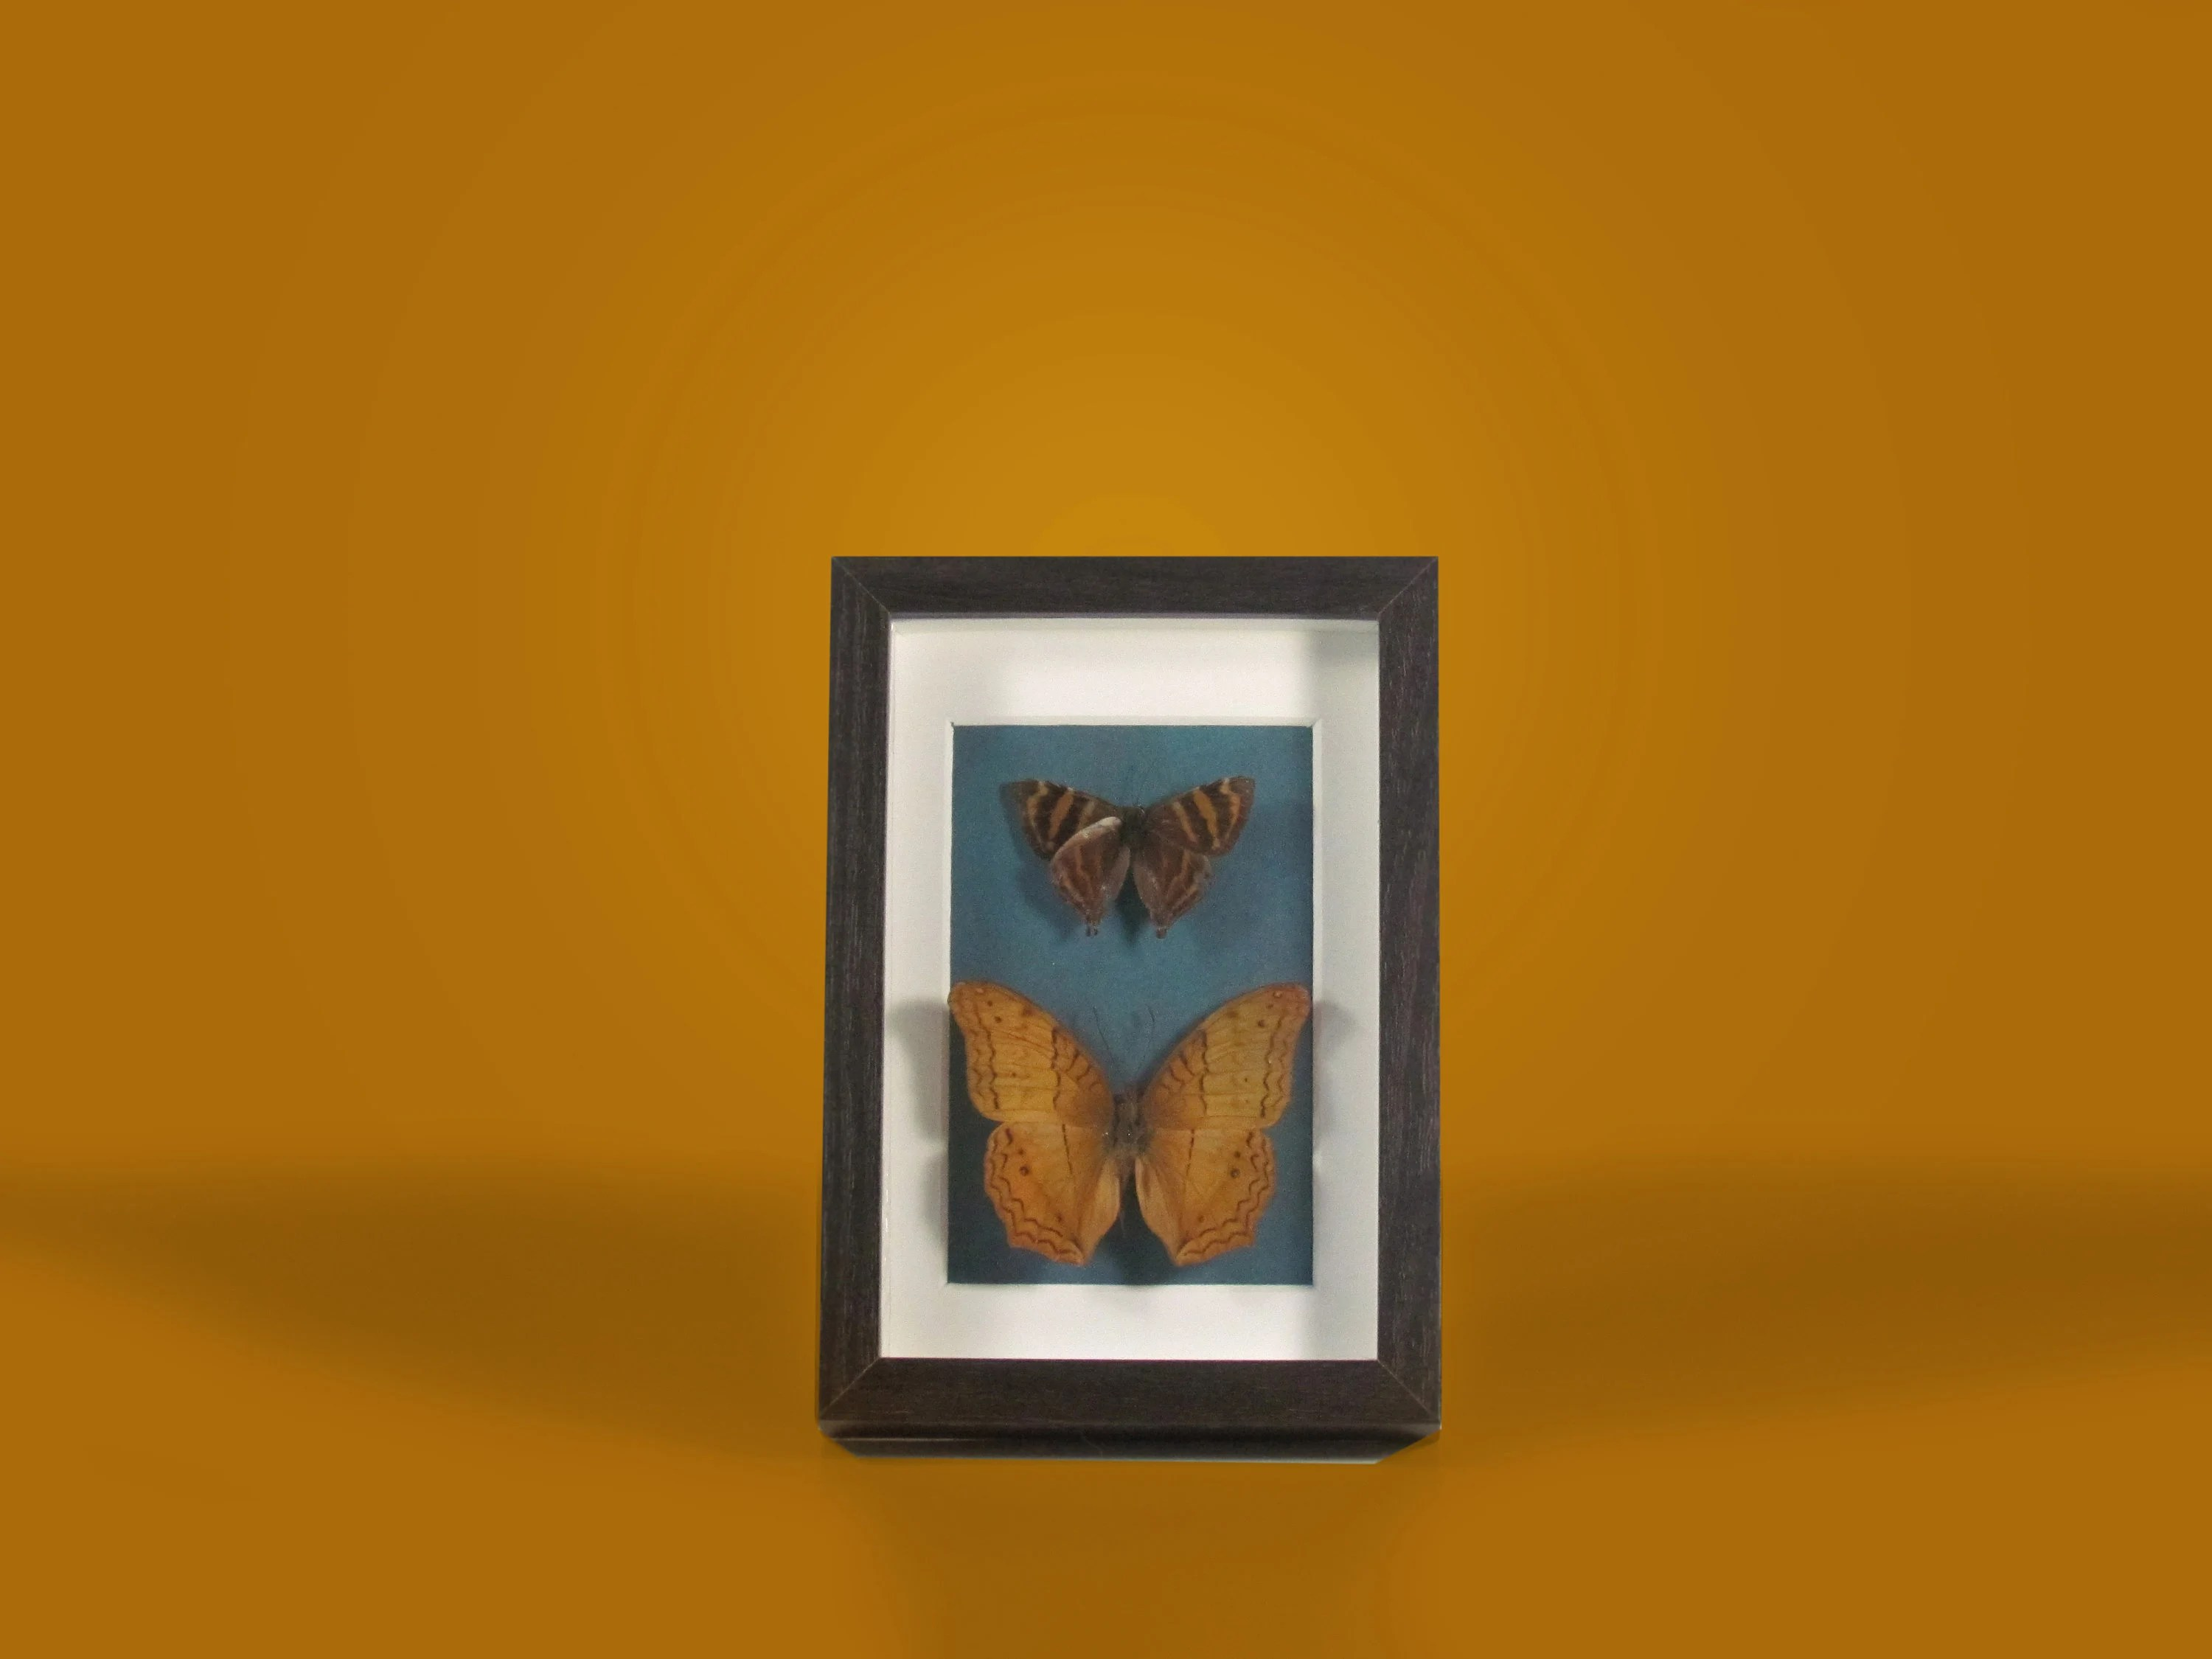 Unique home decor   Etsy Real Mounted and Framed Butterflies  Natural Fantasies Artwork  Unique Home  Decor and Curiosities